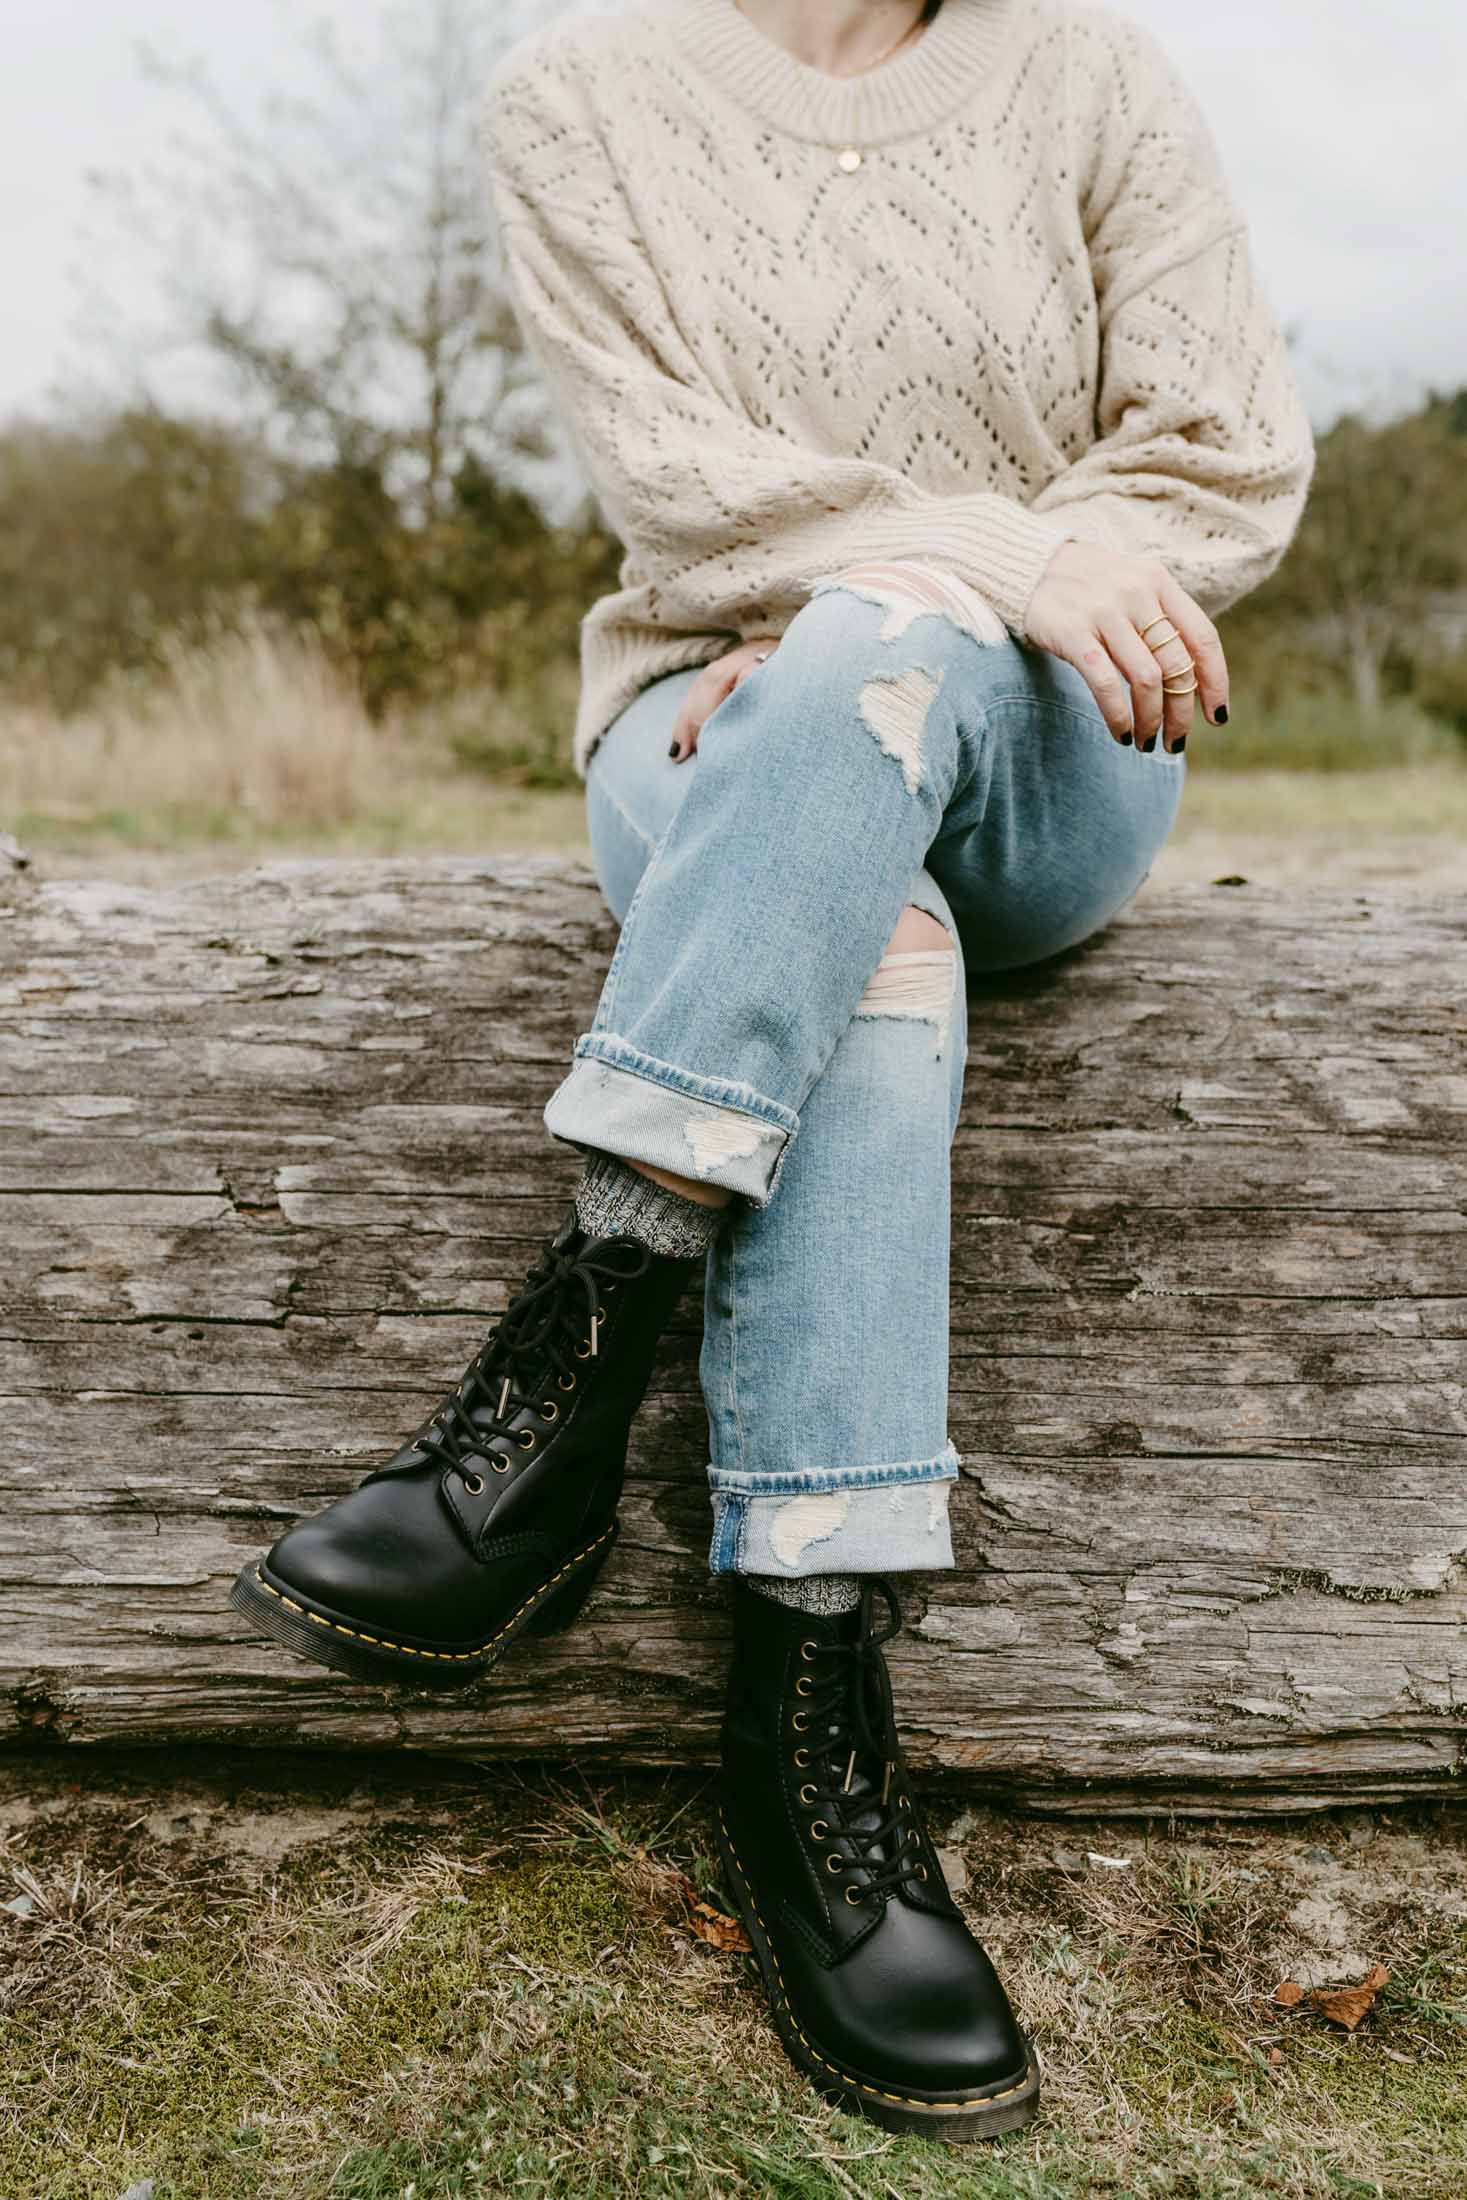 Dr. Martens continue to be a TME fave for combat boots. We're styling 'em w/ straight-leg crop jeans & black-wash dad jeans. 2 outfits — inside.